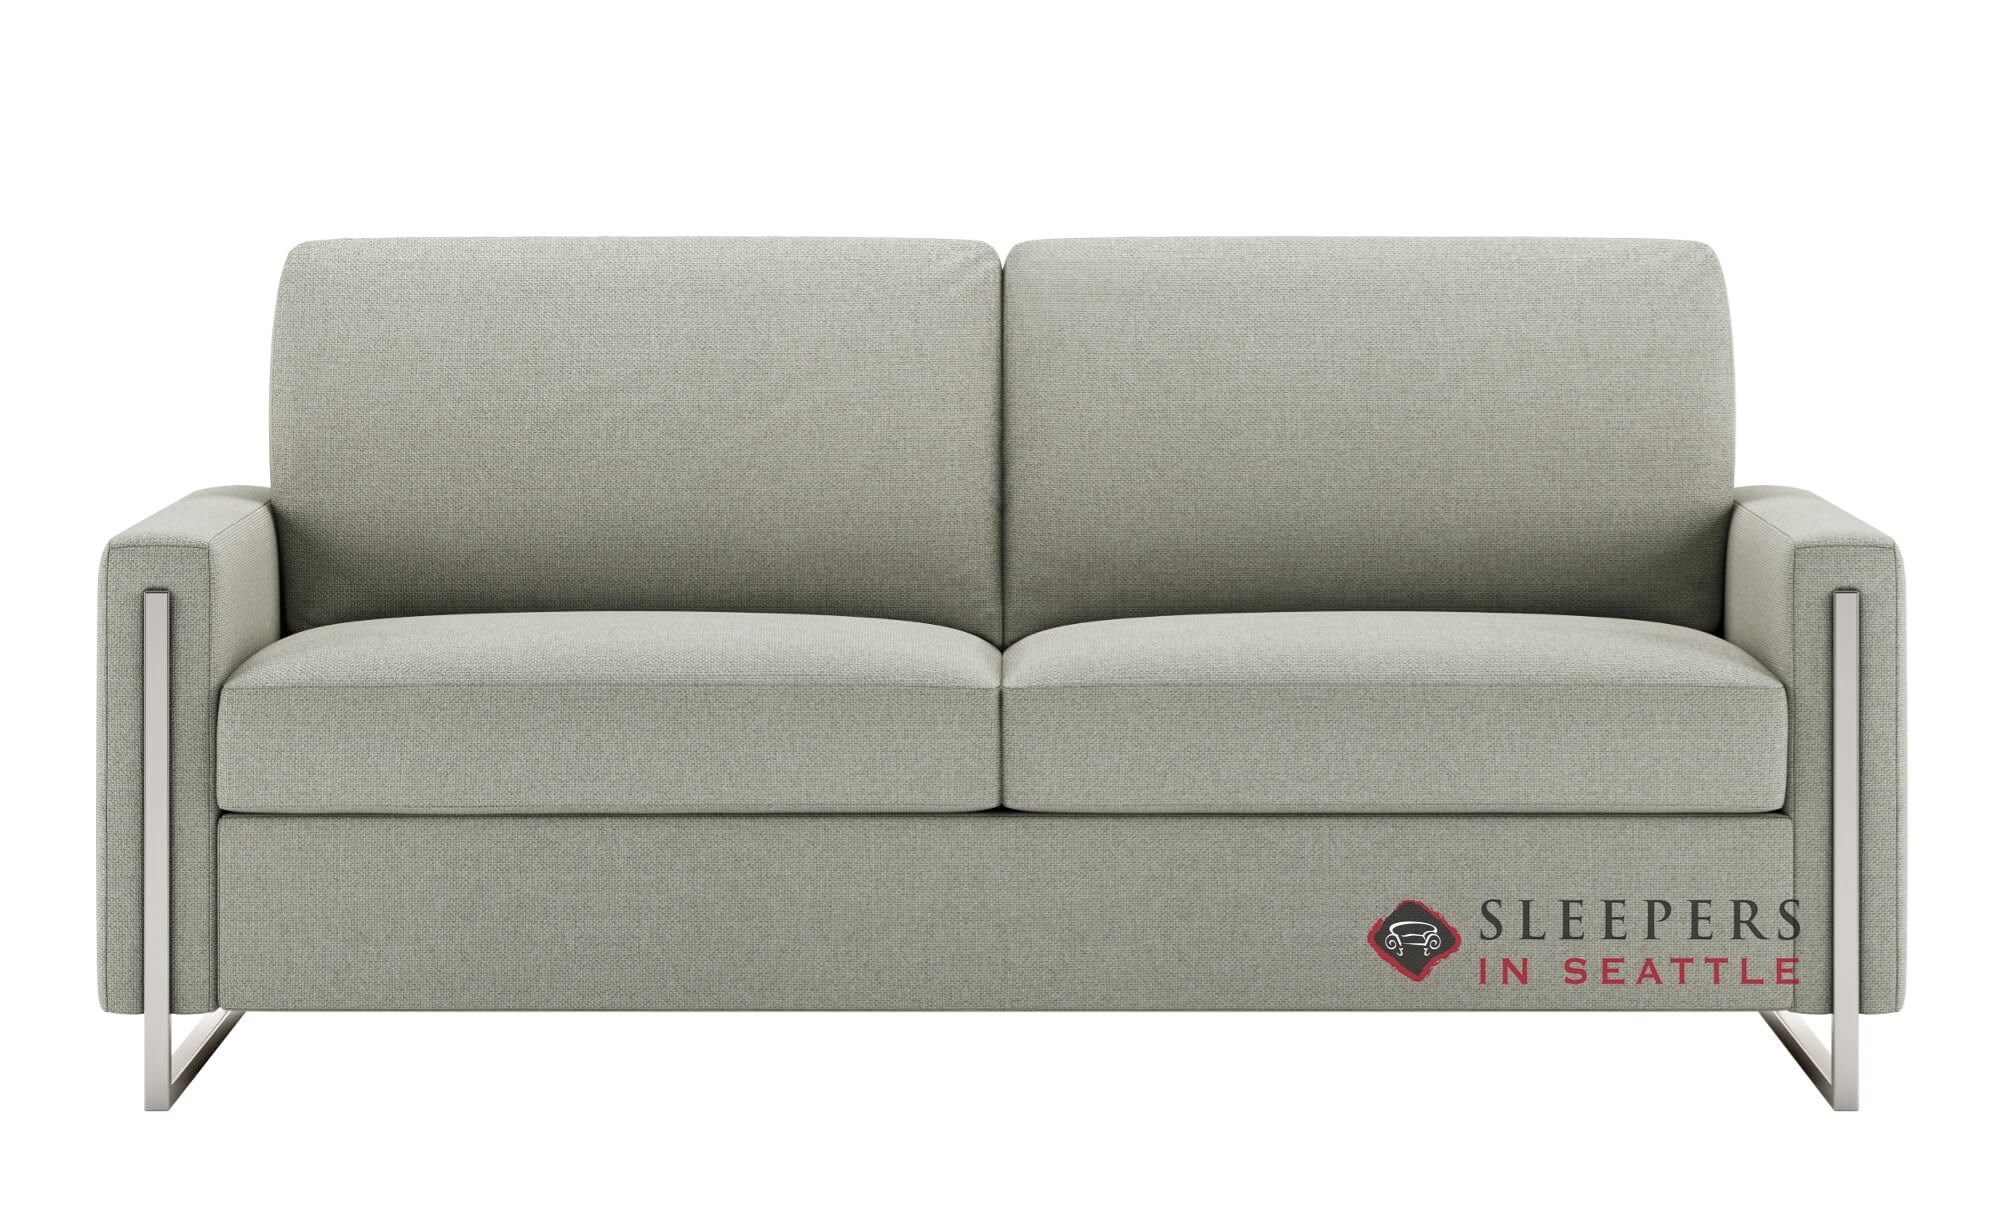 American Leather Sulley Comfort Sleeper Generation Viii